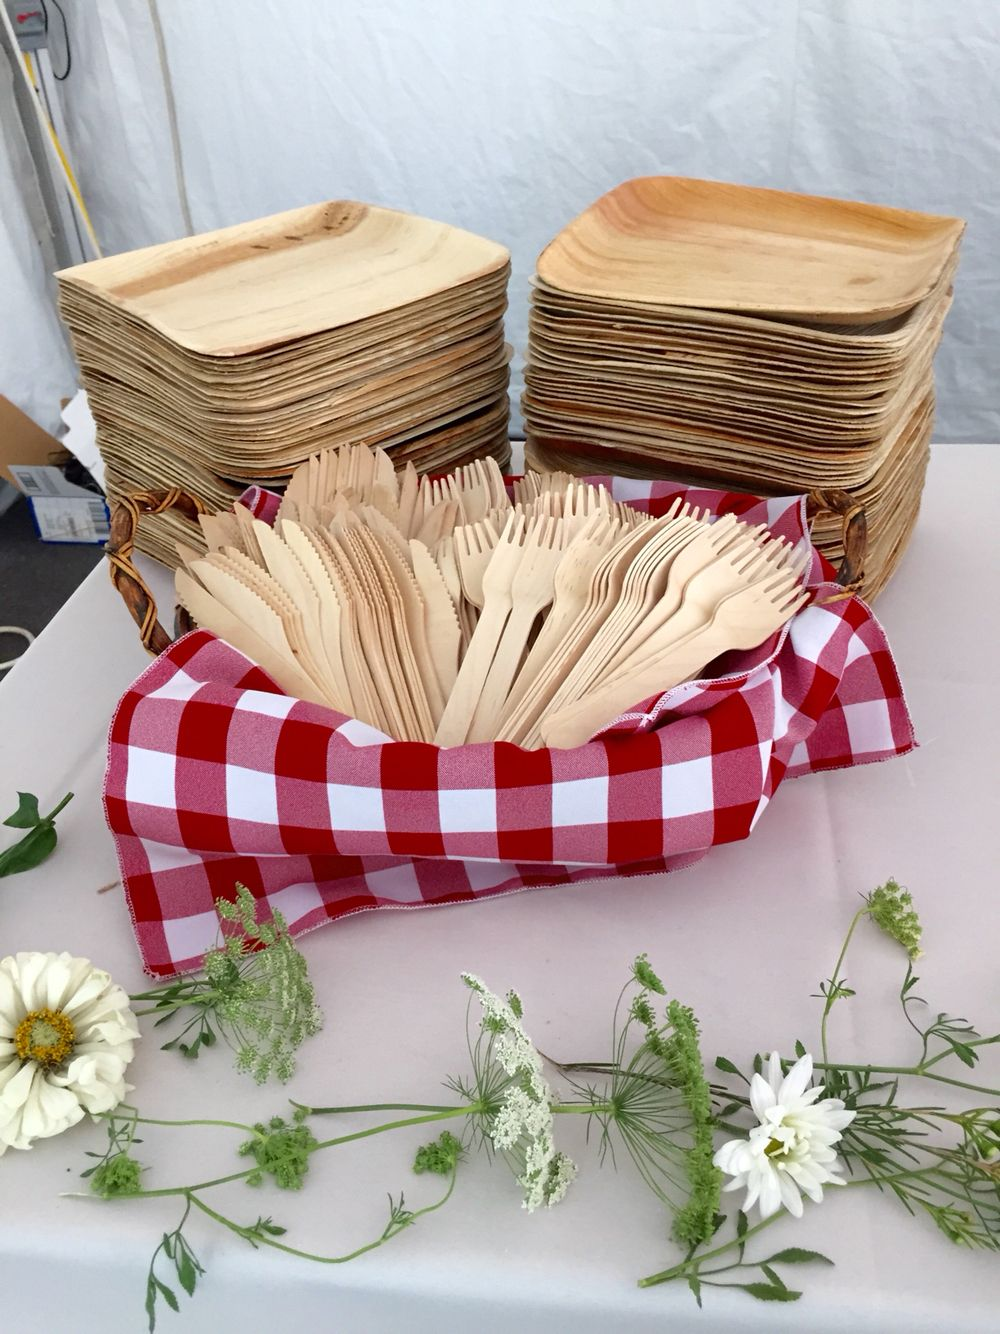 Bamboo plates and utensils //.ecobioshopping.it/it/18-piatti-foglia-di-palma & Bamboo plates and utensils http://www.ecobioshopping.it/it/18-piatti ...